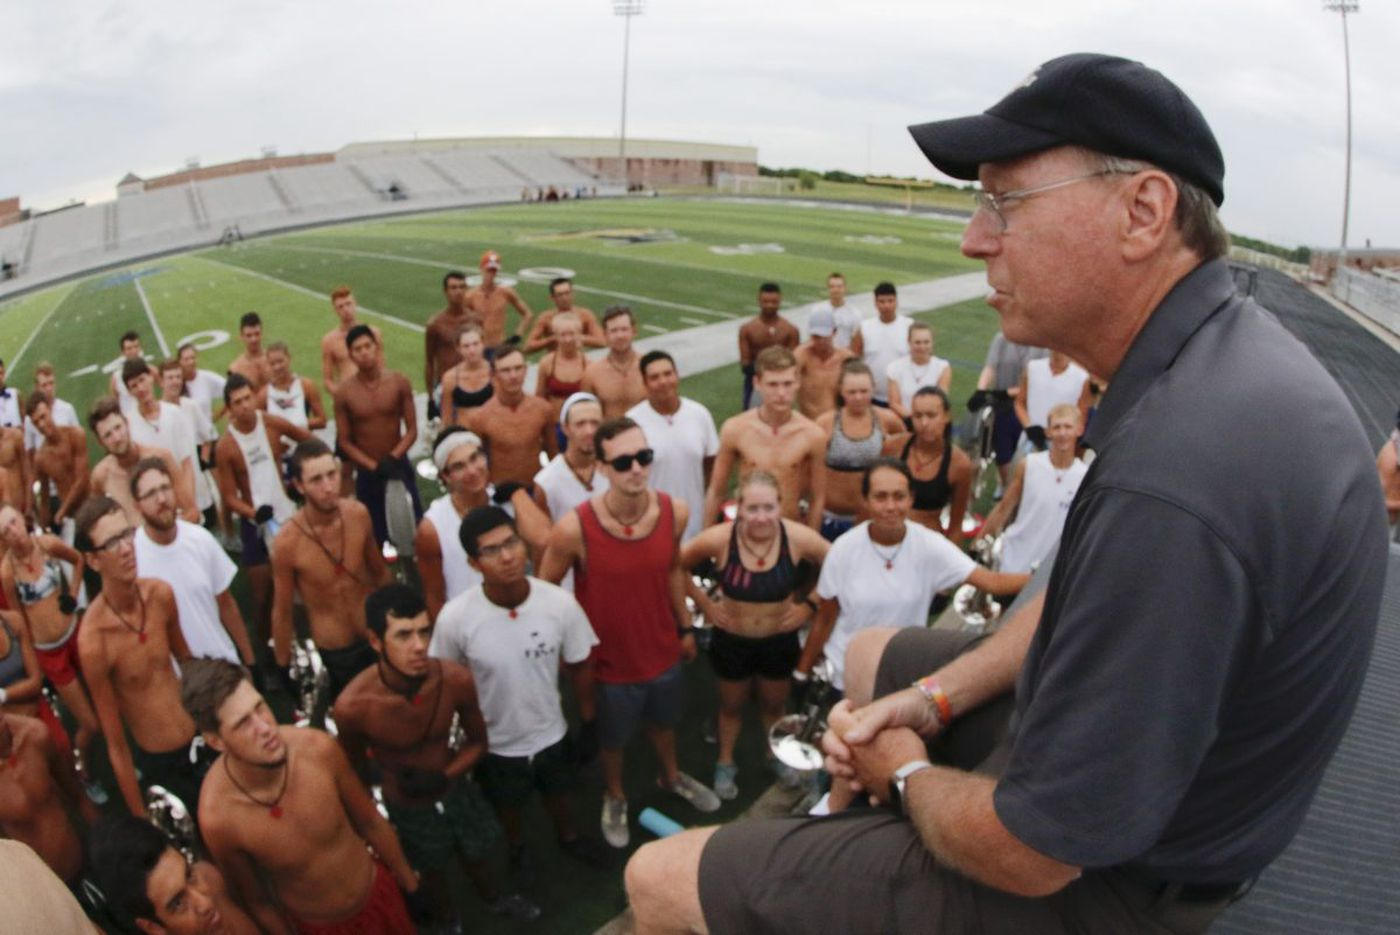 Drum corps chairman resigns amid scrutiny of his hiring of disgraced teacher